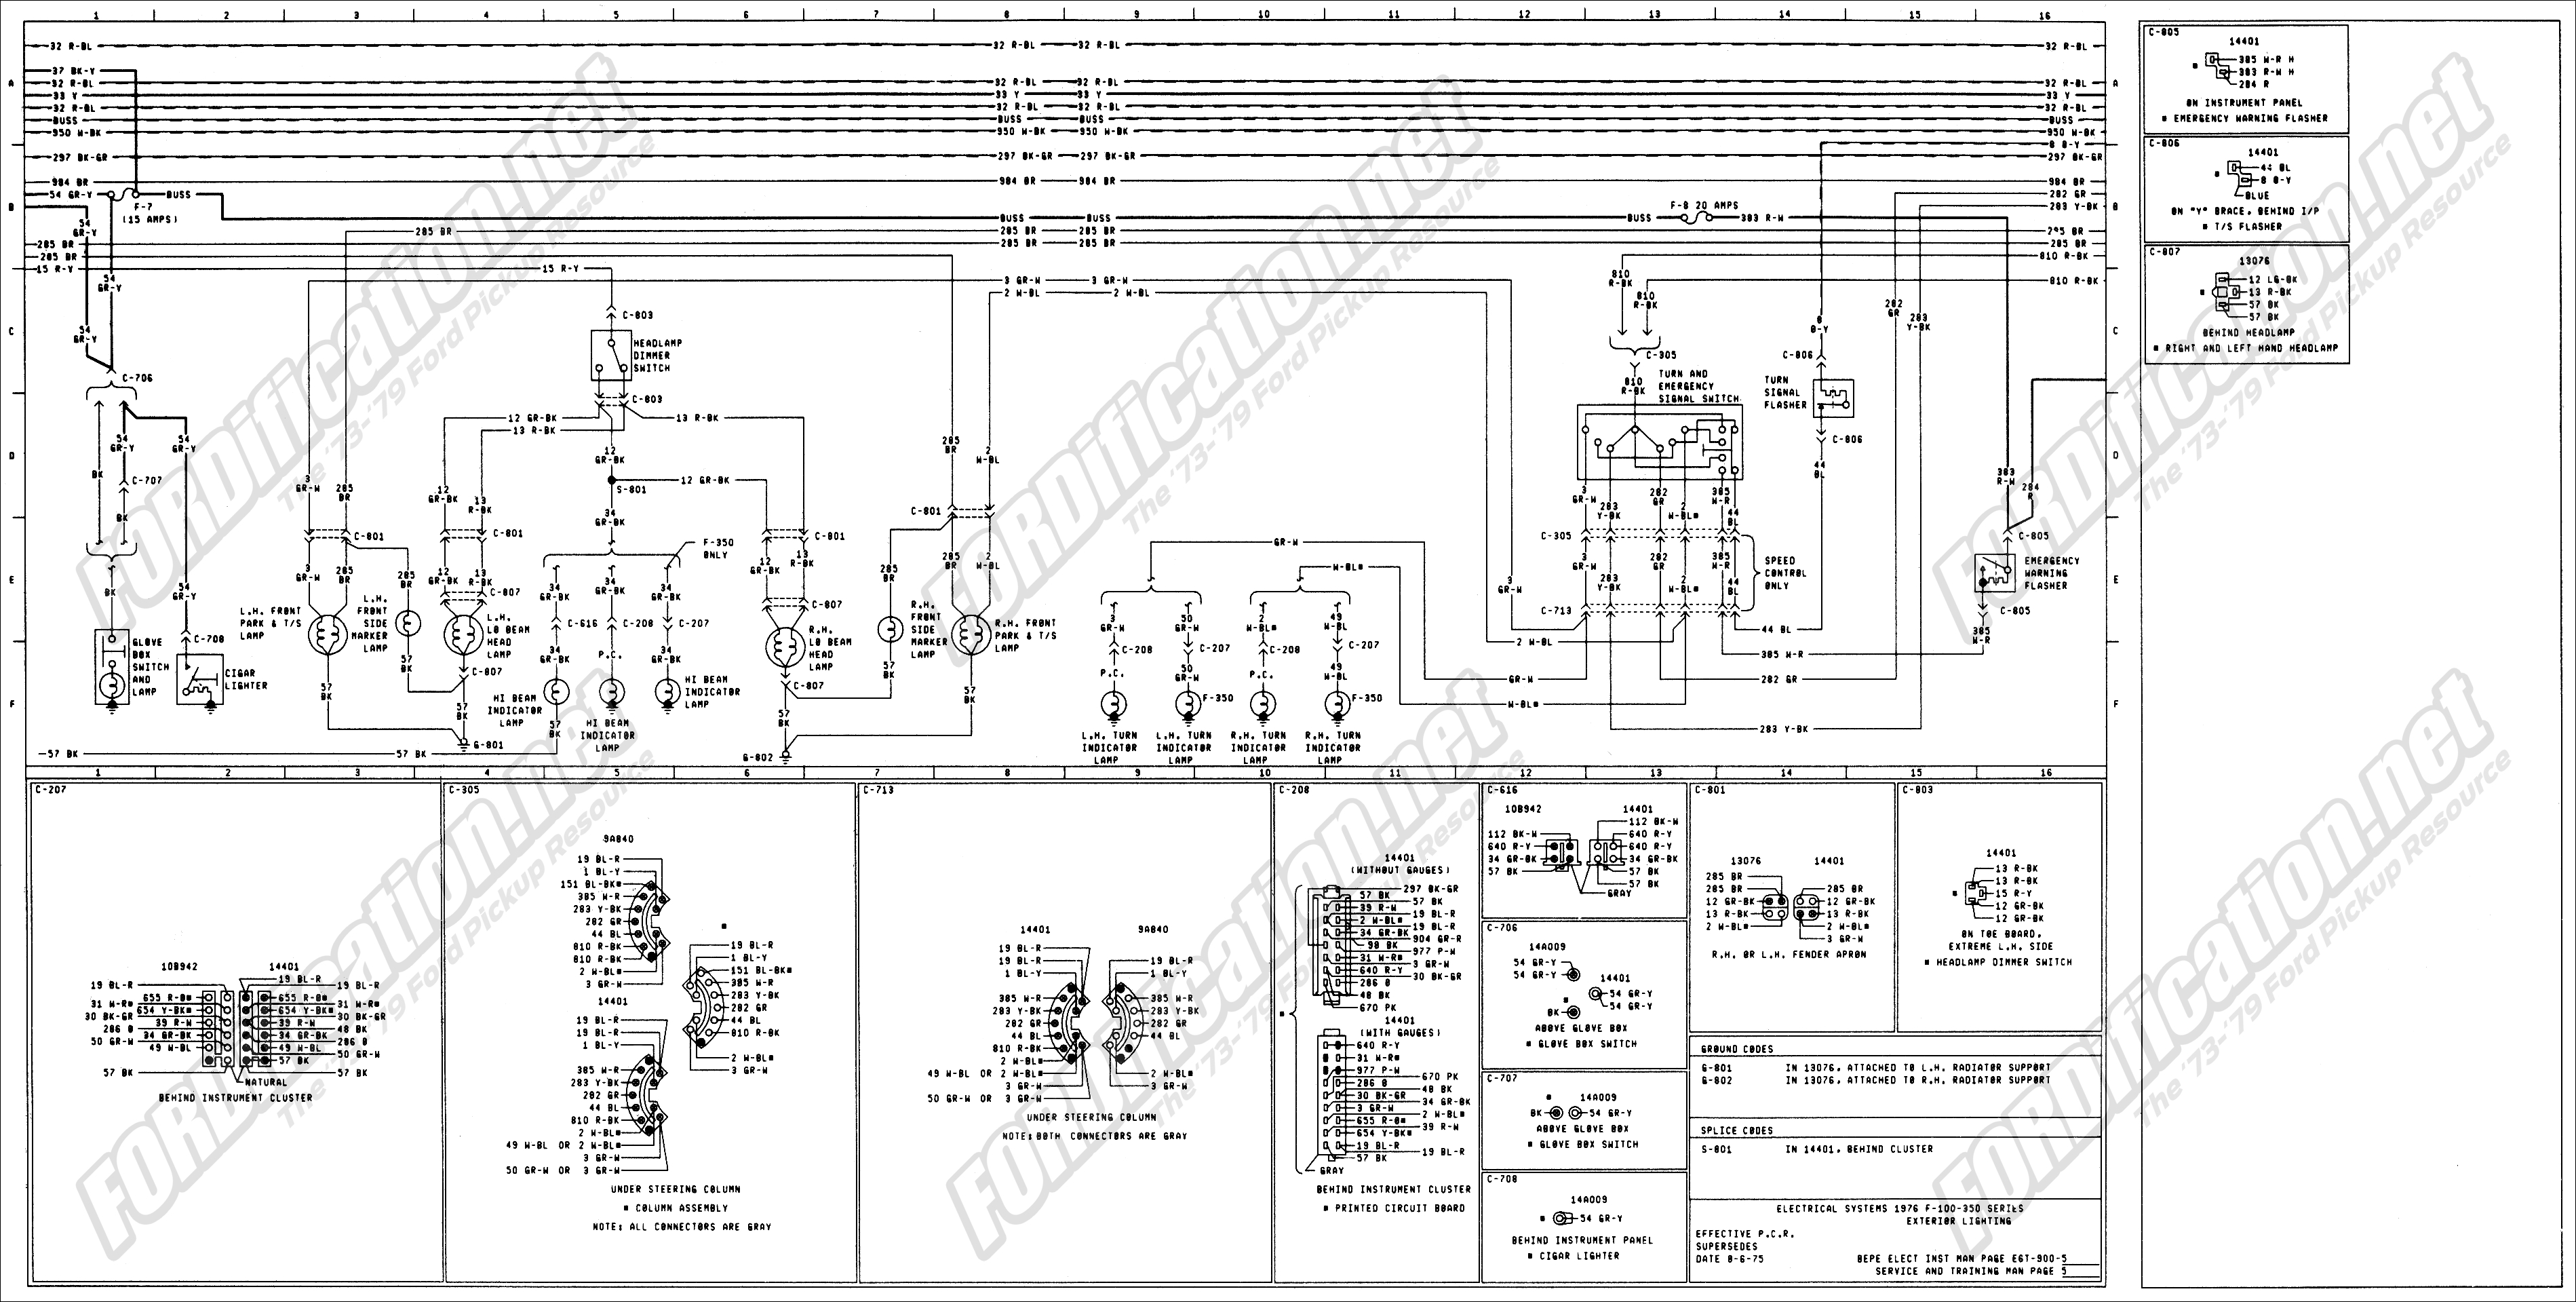 1976 Ford Turn Signal Switch Wiring Diagram - Wiring Diagrams Hubs - Ford F250 Wiring Diagram For Trailer Lights